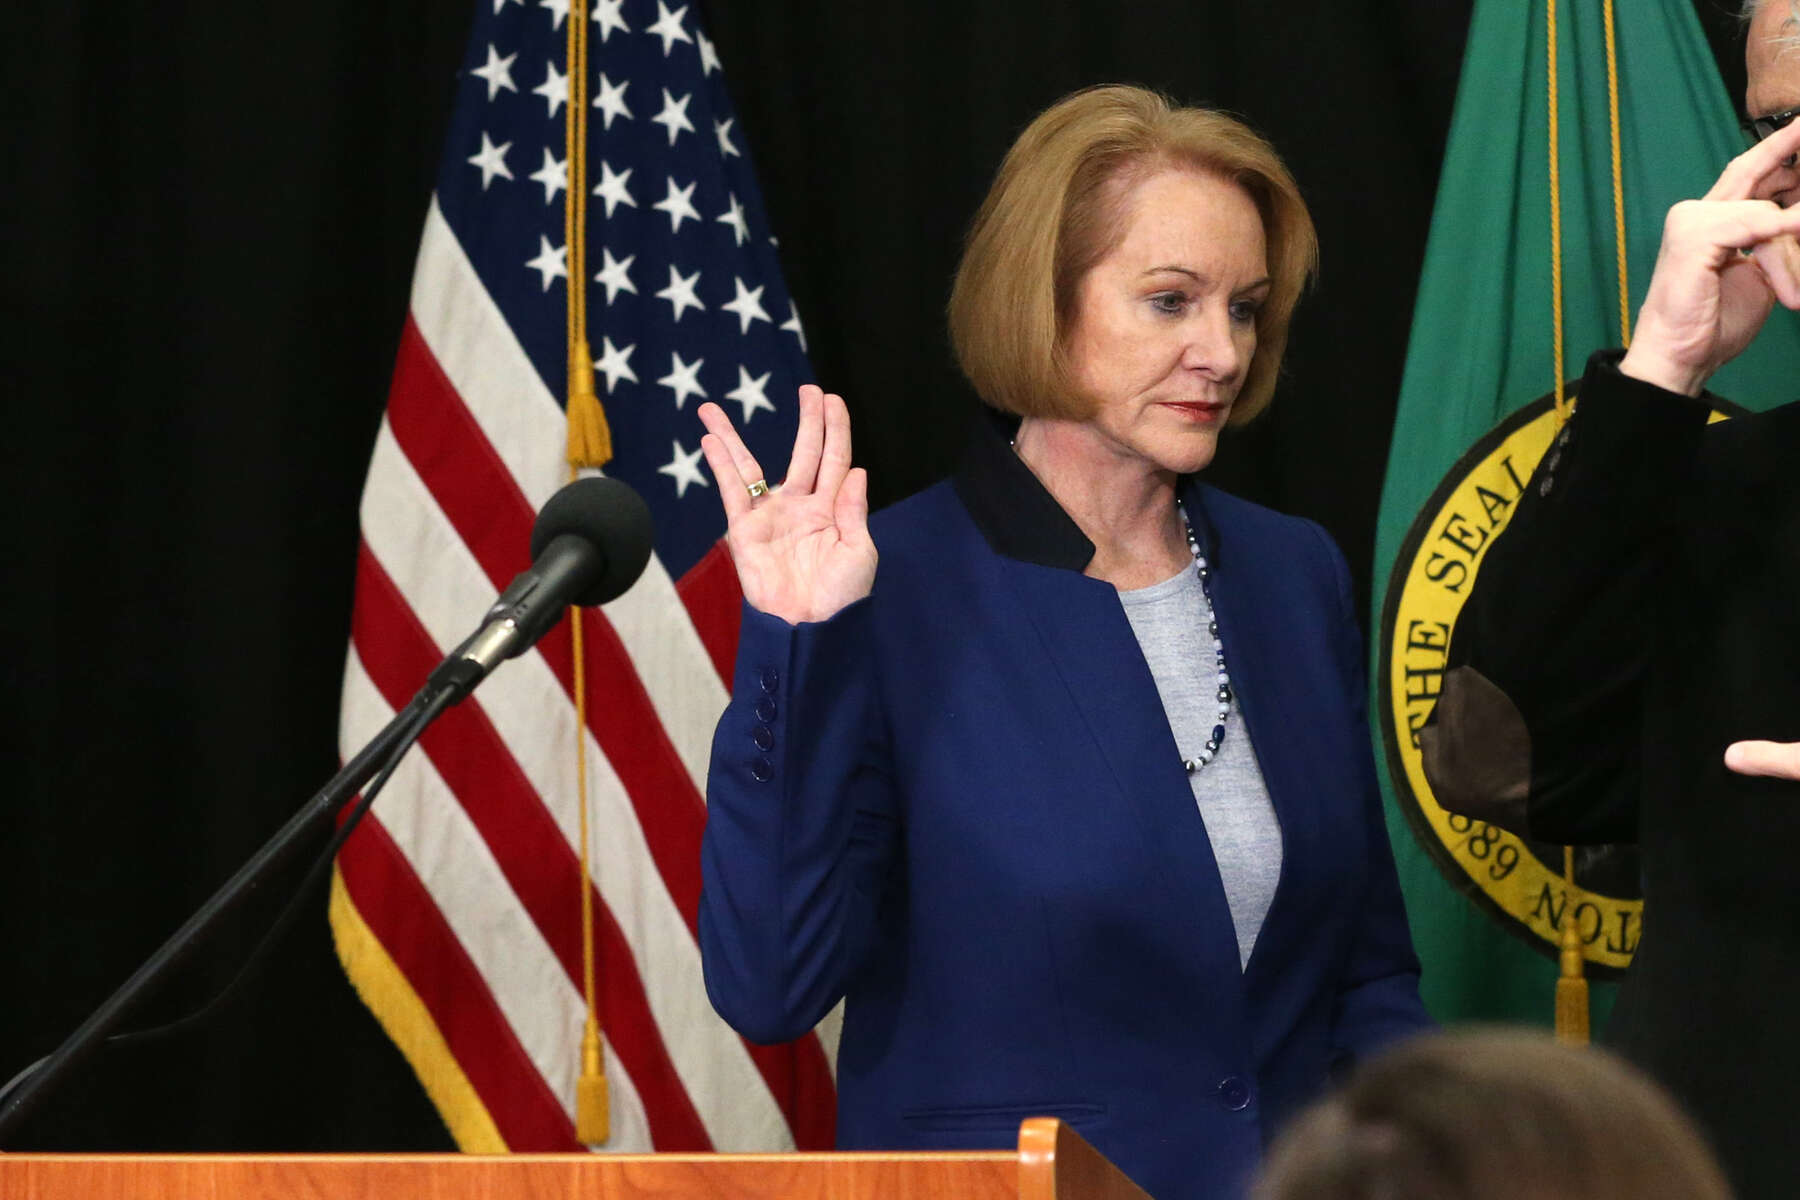 Seattle Mayor Jenny Durkan makes the {quote}Live long and prosper{quote} Vulcan salute after speaking at a news conference to announce measures to combat the spread of novel coronavirus, COVID-19, in Seattle, Washington, U.S. March 11, 2020.  REUTERS/Karen Ducey